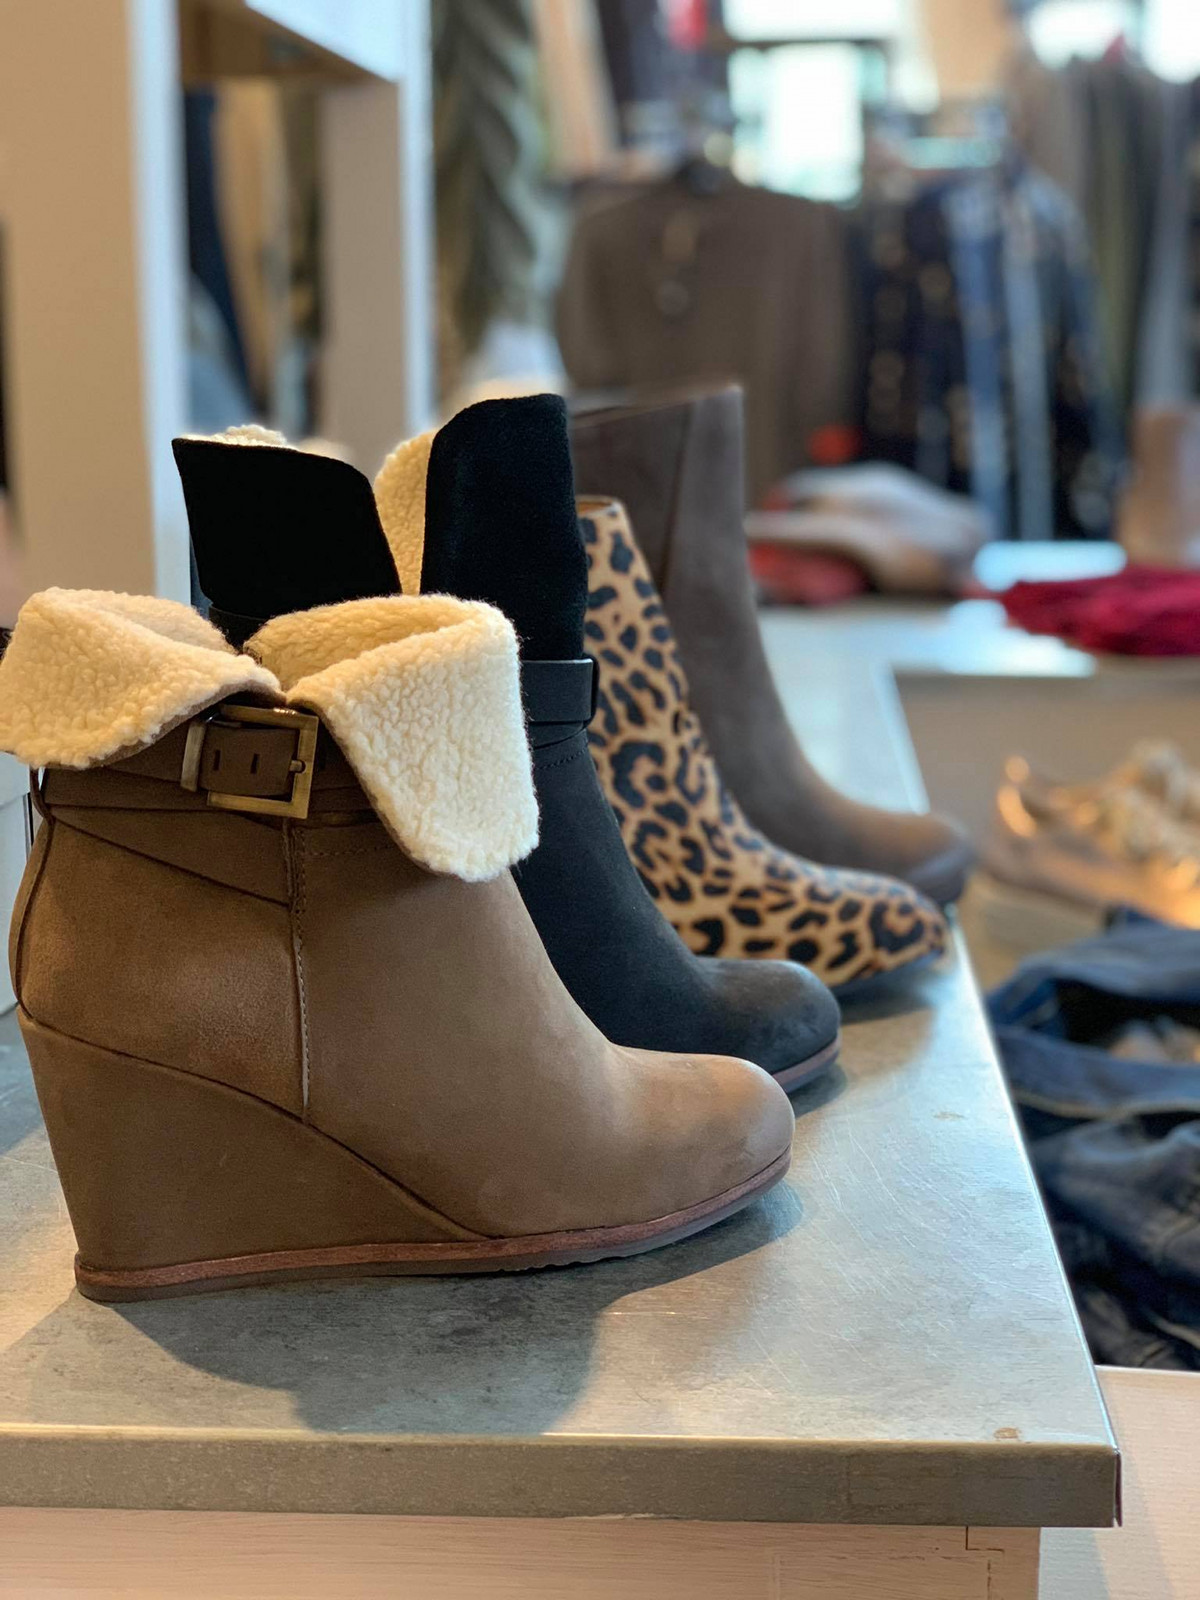 The James Salone & Boutique boots